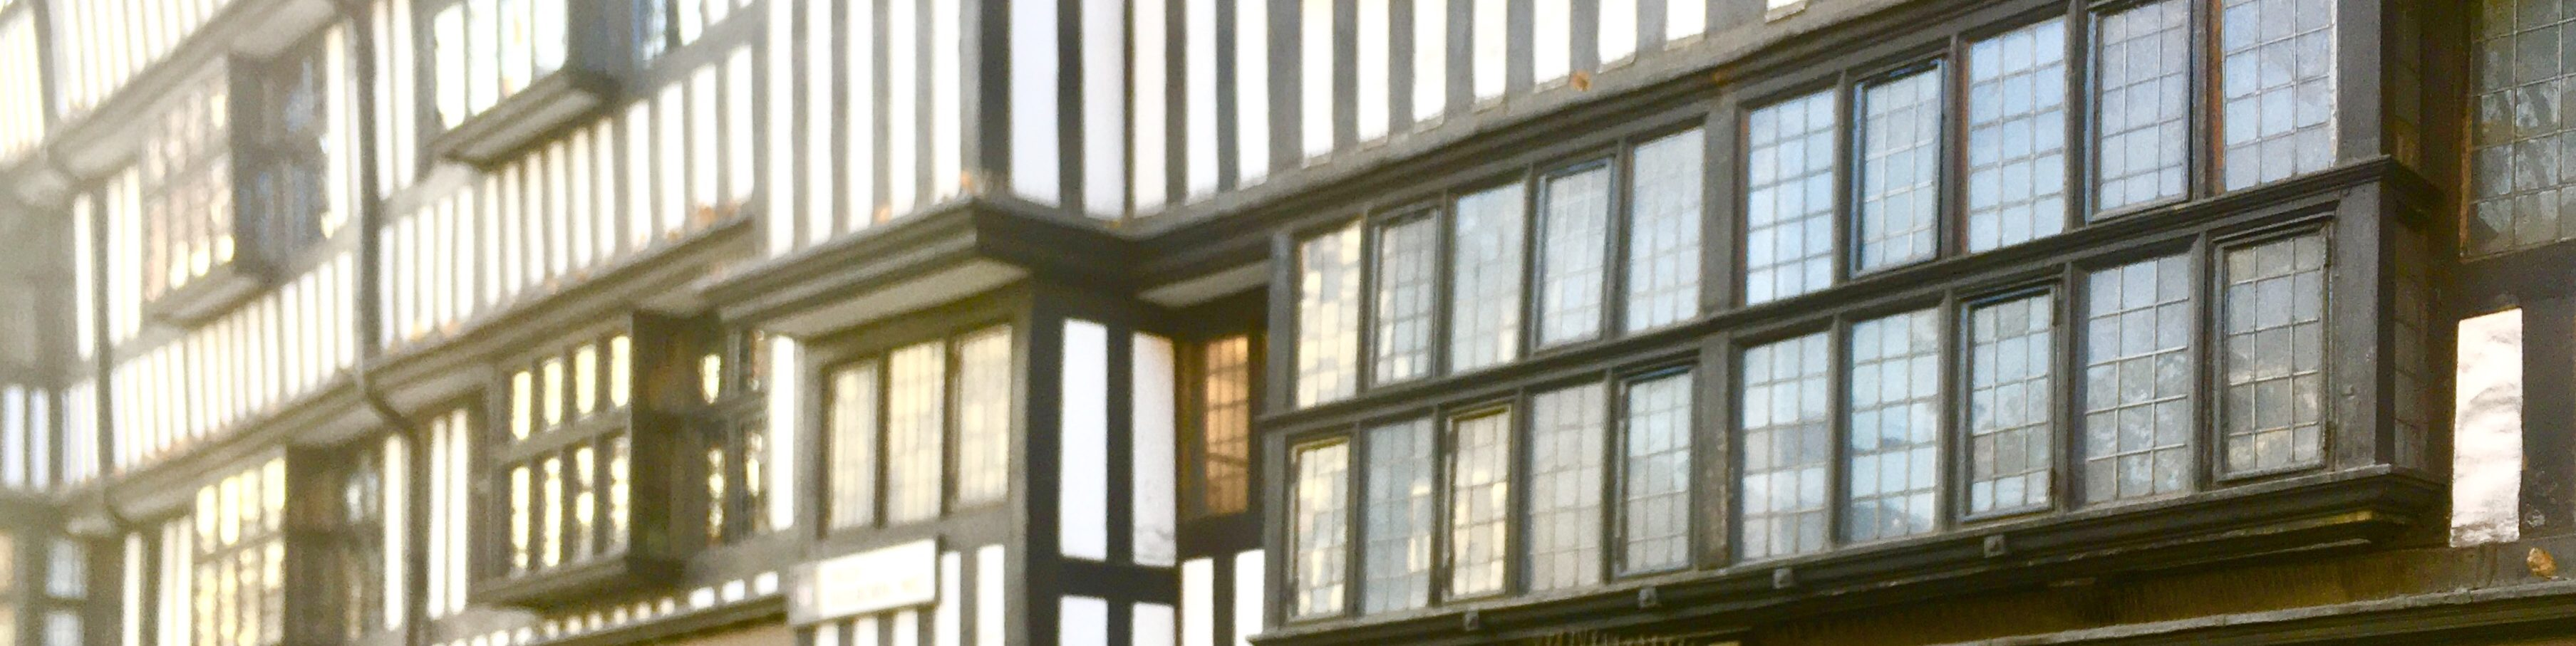 Psychotherapy @ Staple Inn and Museum St